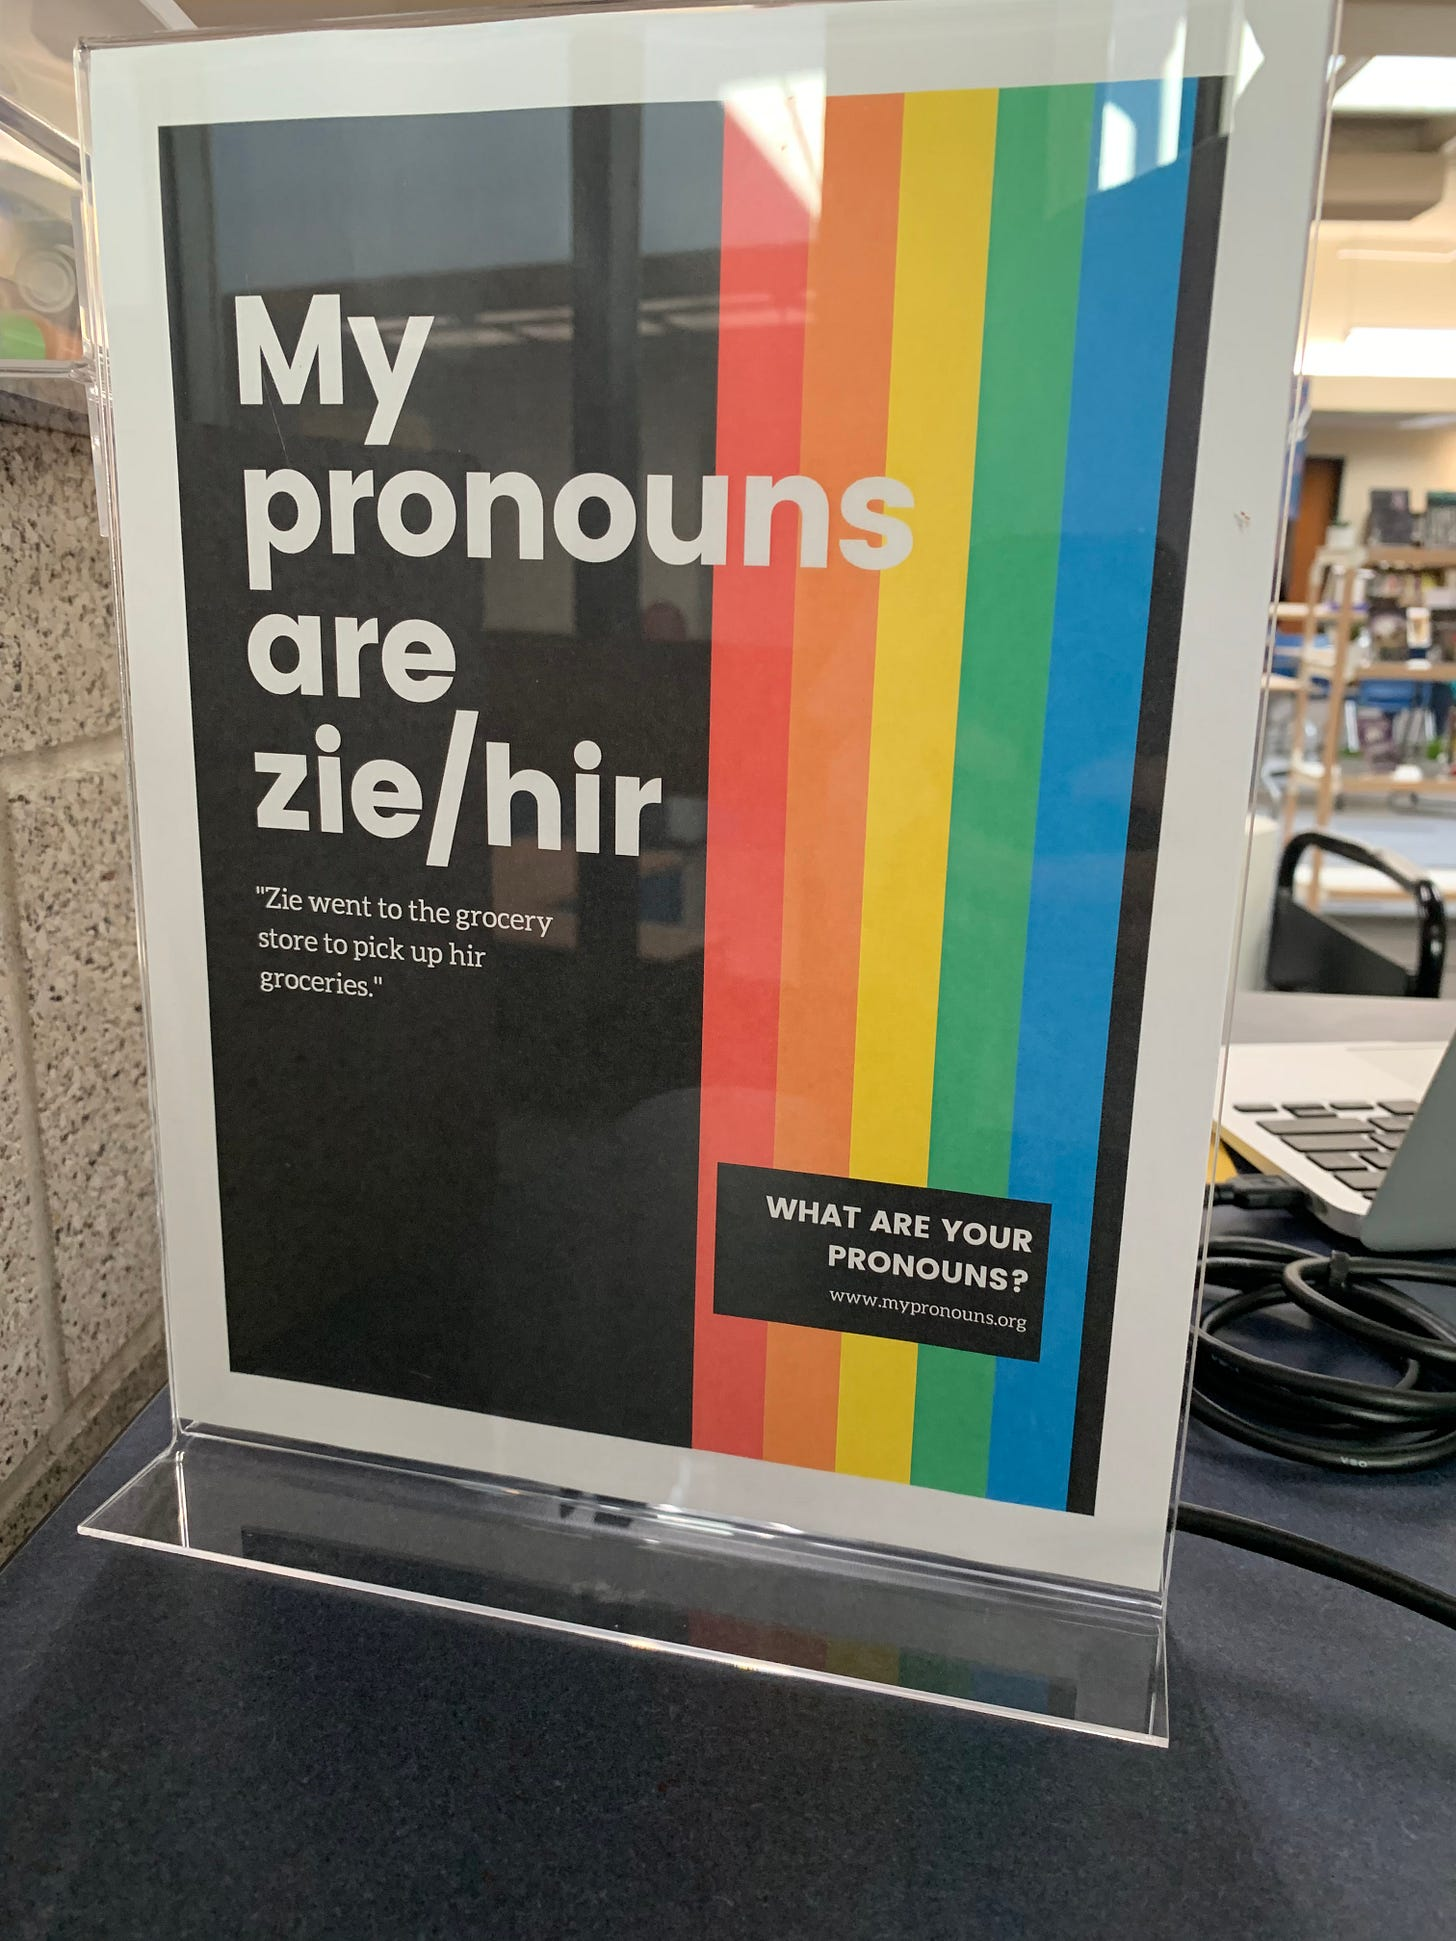 """A poster in a plastic cover has a rainbow over black. The white text reads """"My pronouns are zie/hir. """"Zie went to the grocery store to pick up hir groceries."""" What are you pronouns? www.mypronouns.org"""""""